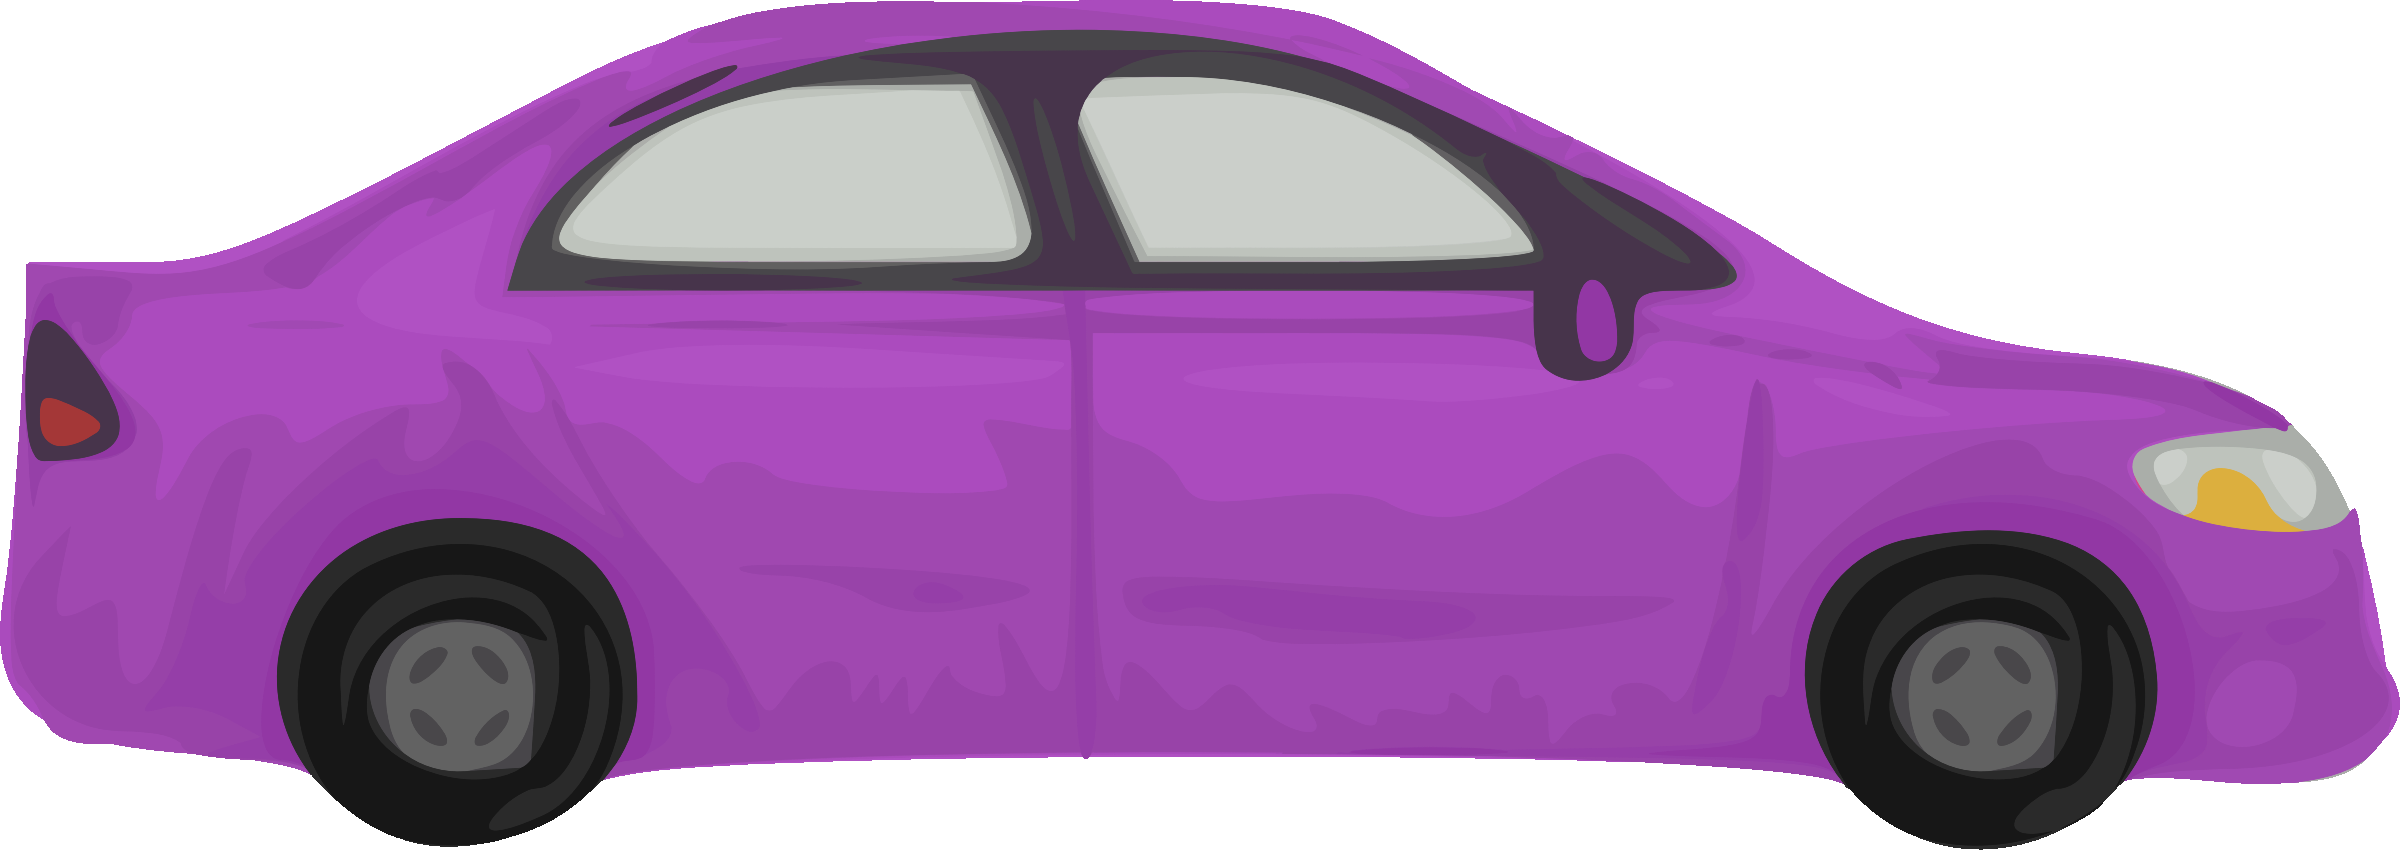 Clipart of car jpg freeuse download Clipart - Rough car (purple) jpg freeuse download